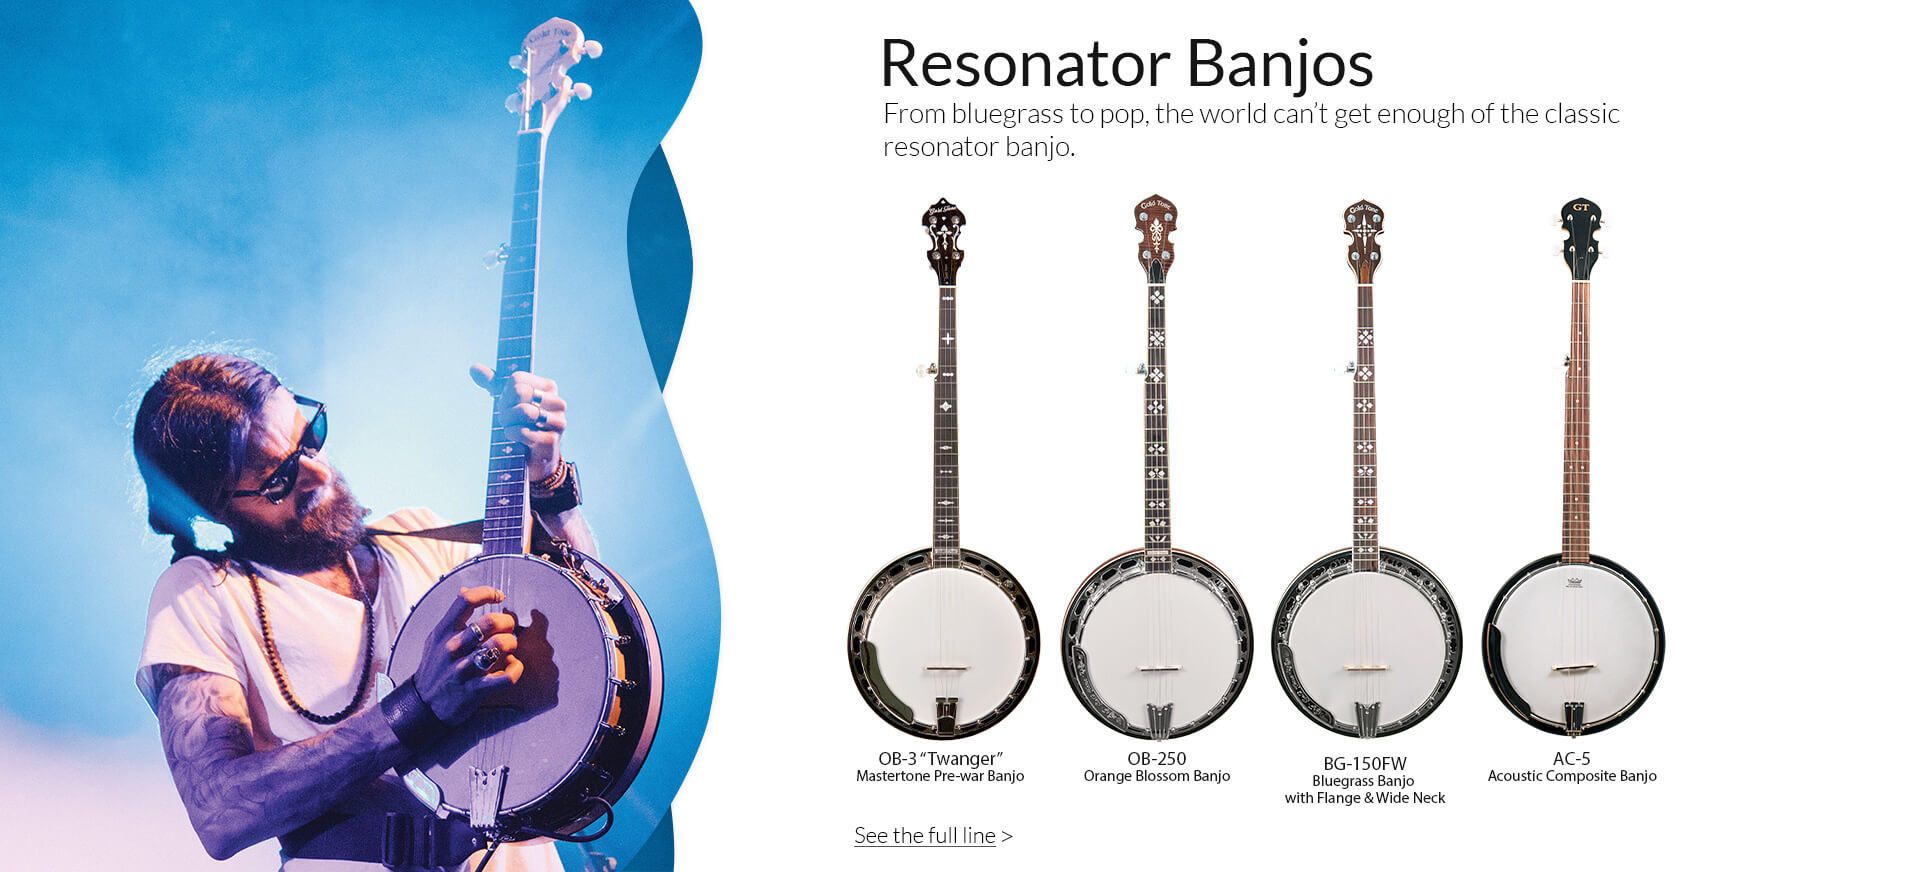 The leader in resonator banjos.